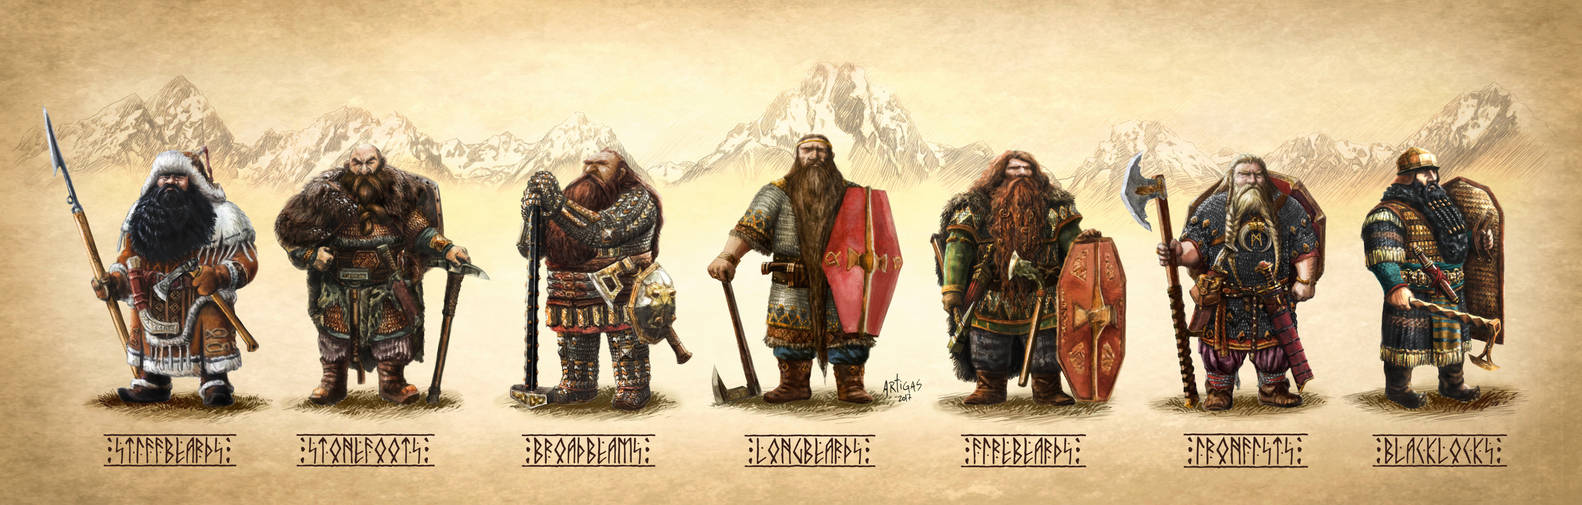 The seven houses of the Khazad